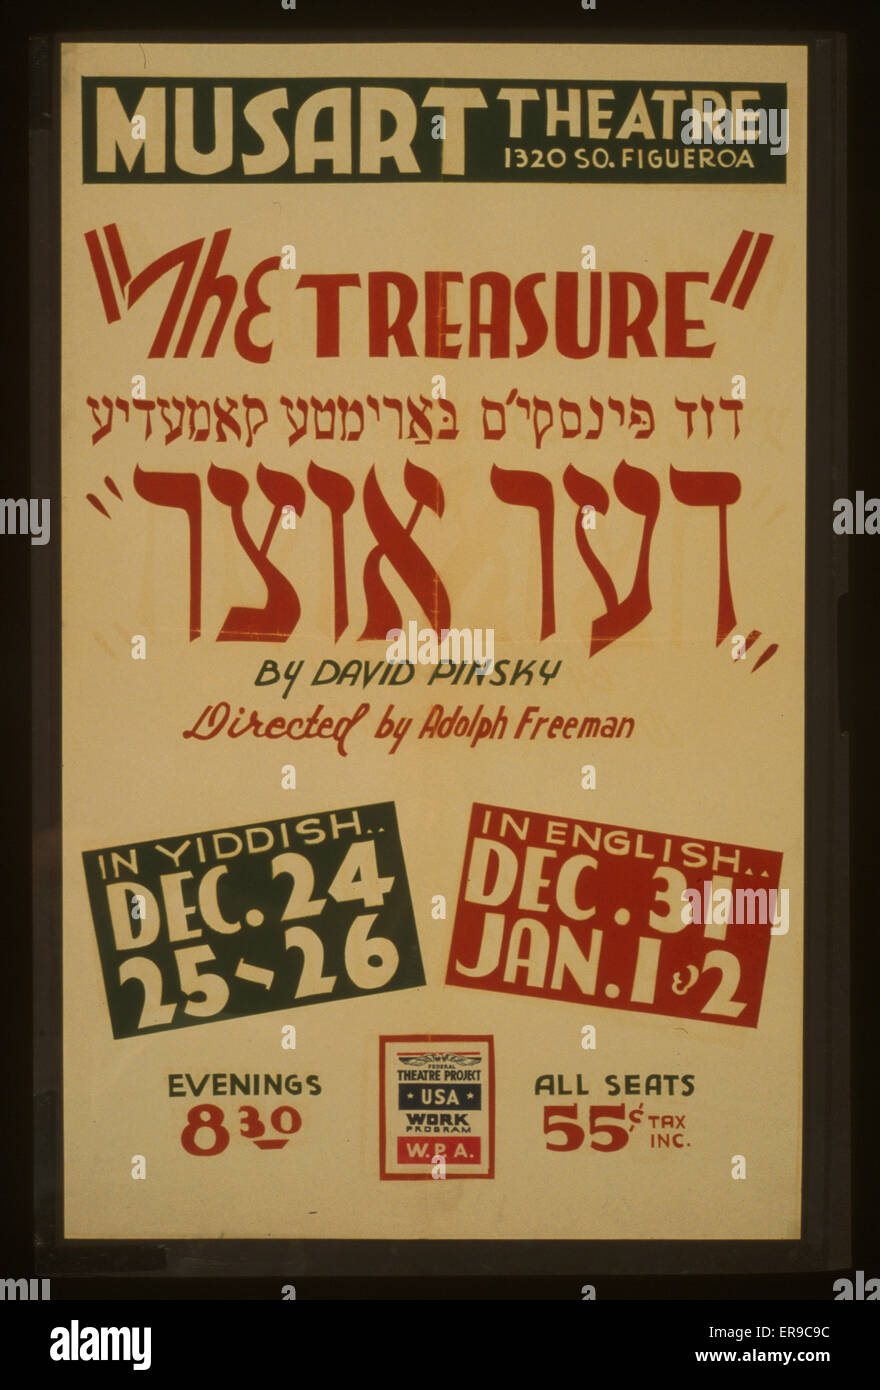 The treasure by David Pinsky, directed by Adolph Freeman. Poster for Federal Theatre Project presentation of The - Stock Image